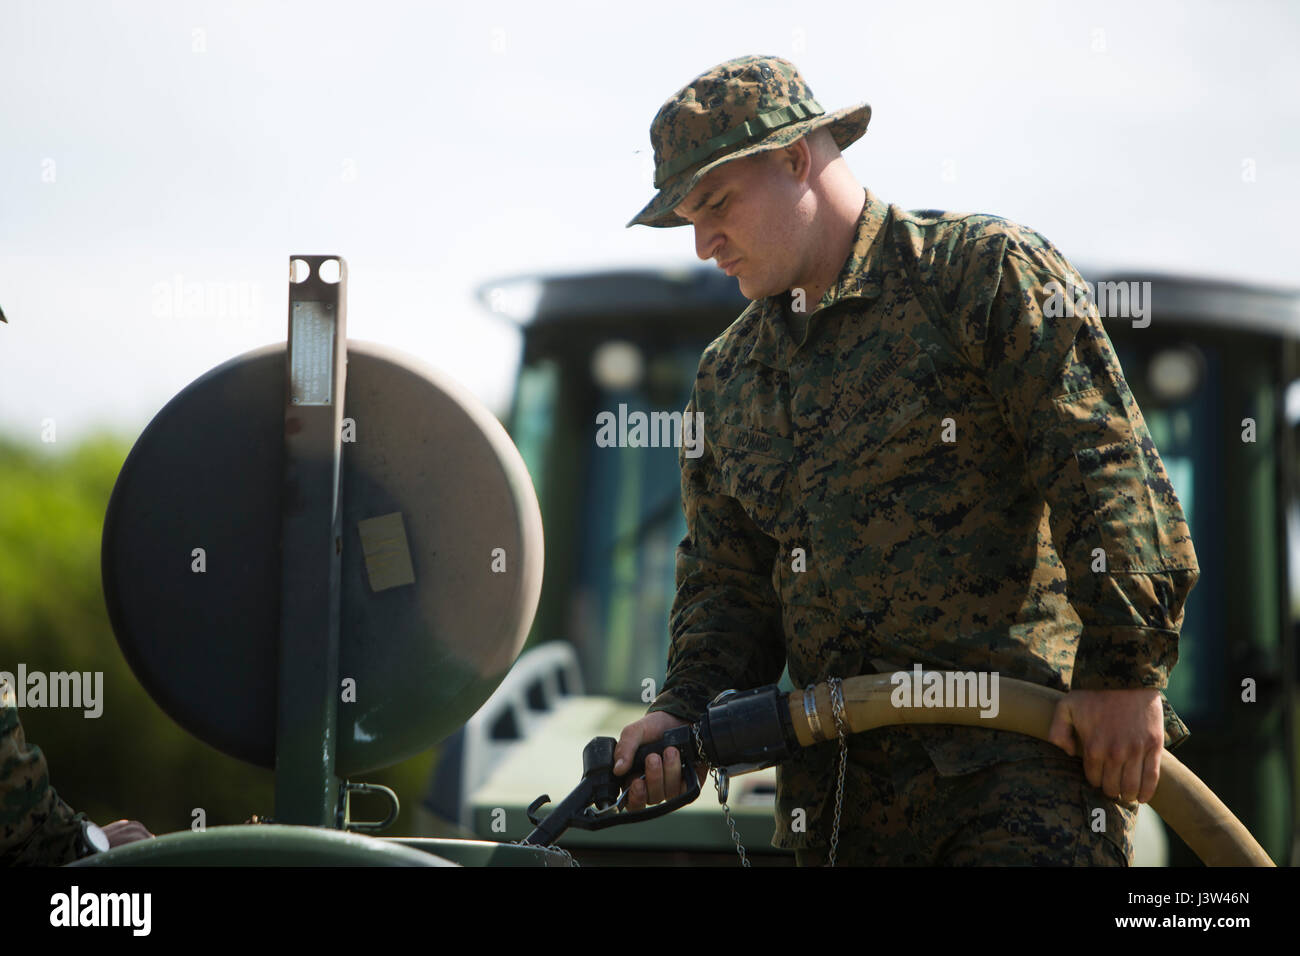 CAMP LEJEUNE, N.C. – Lance Cpl. Daniel M. Howard, basic electrician ...